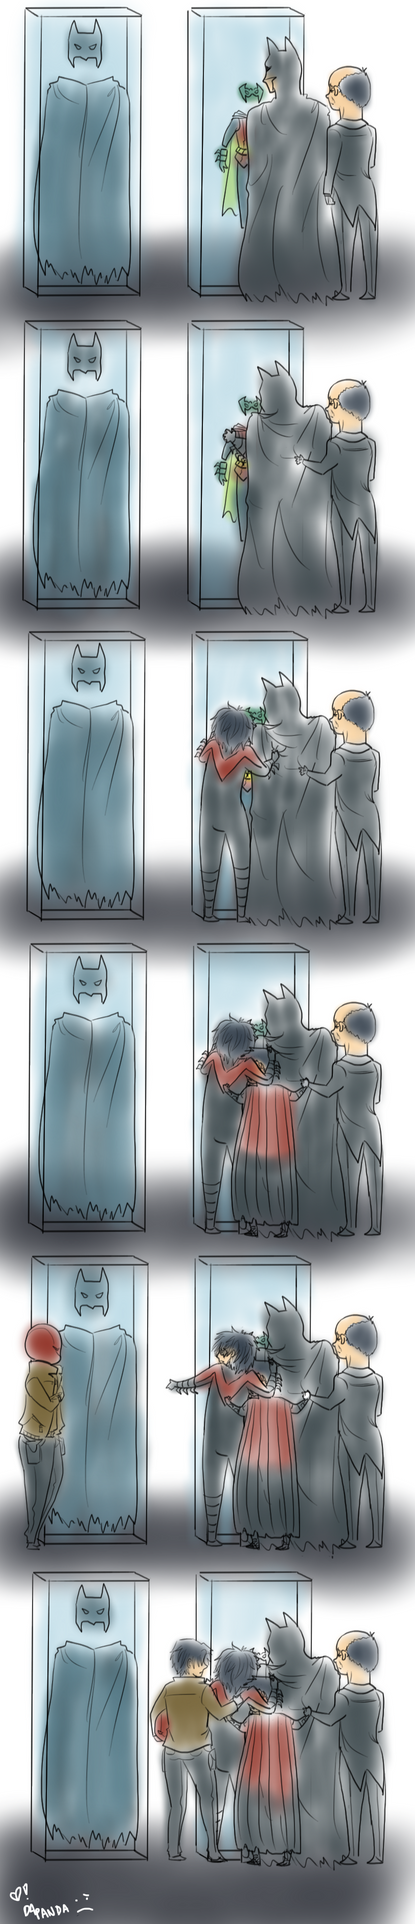 [Spoilers] Bat-Family Feels by DaPandaBanda